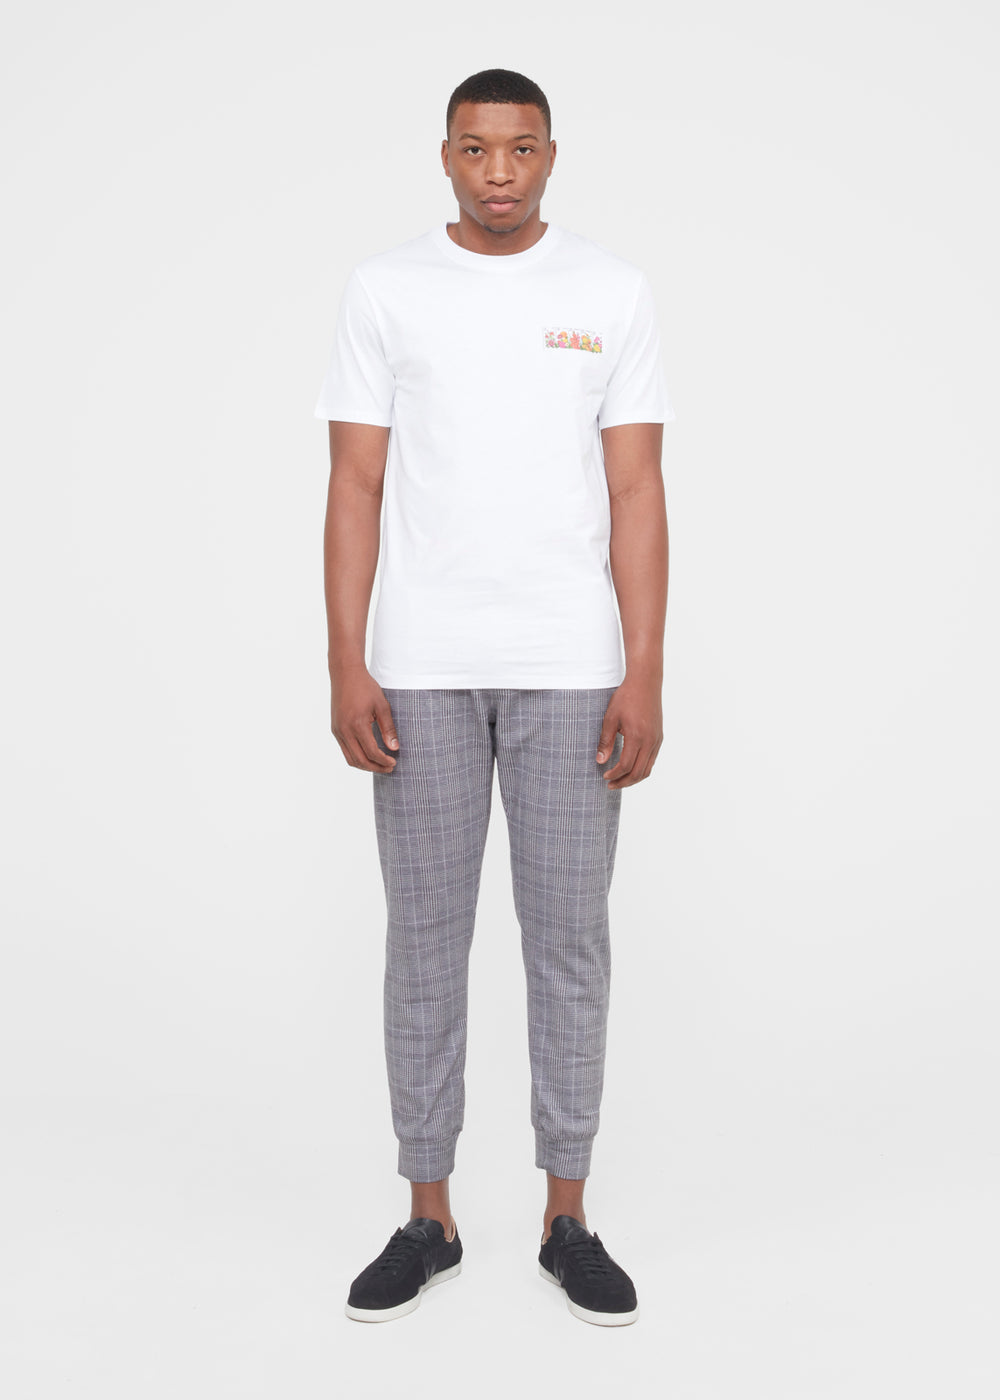 soul-land-soulland-rossell-tee-1000-rossell-wht-wht-4